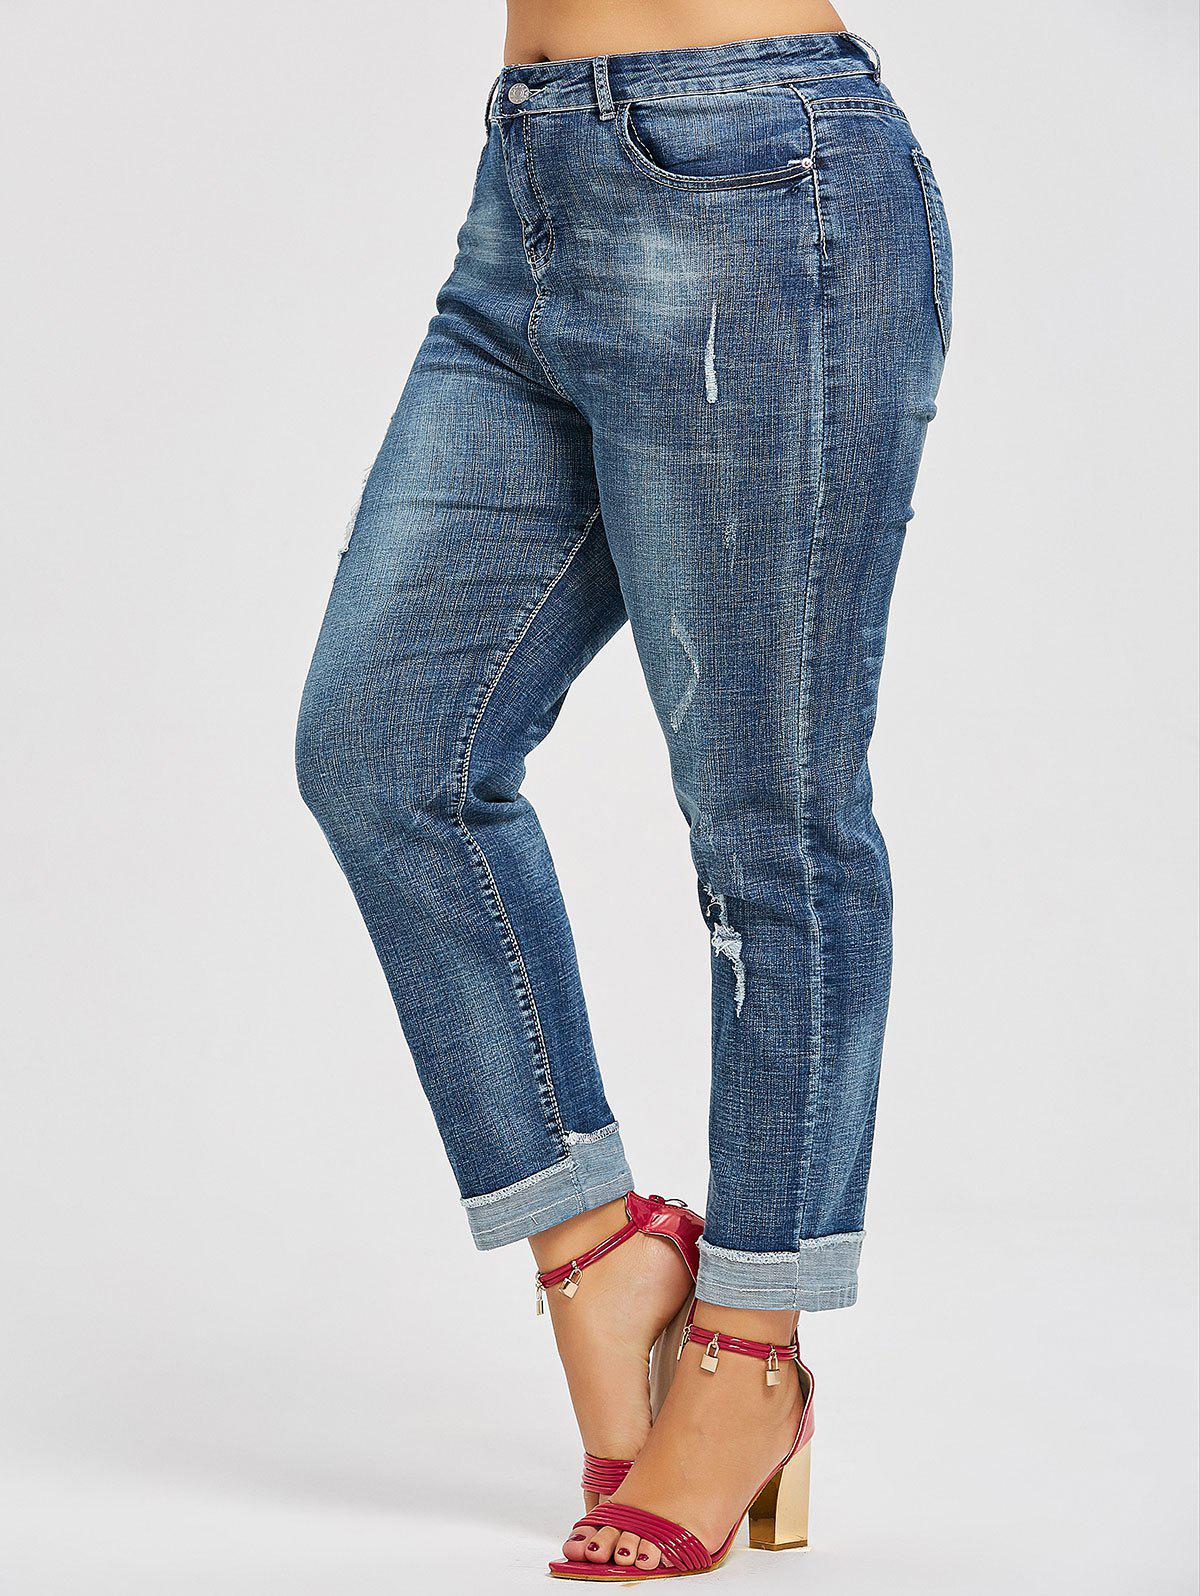 Distressed Back Pockets Plus Size Boyfriend Jeans - DENIM BLUE 3XL